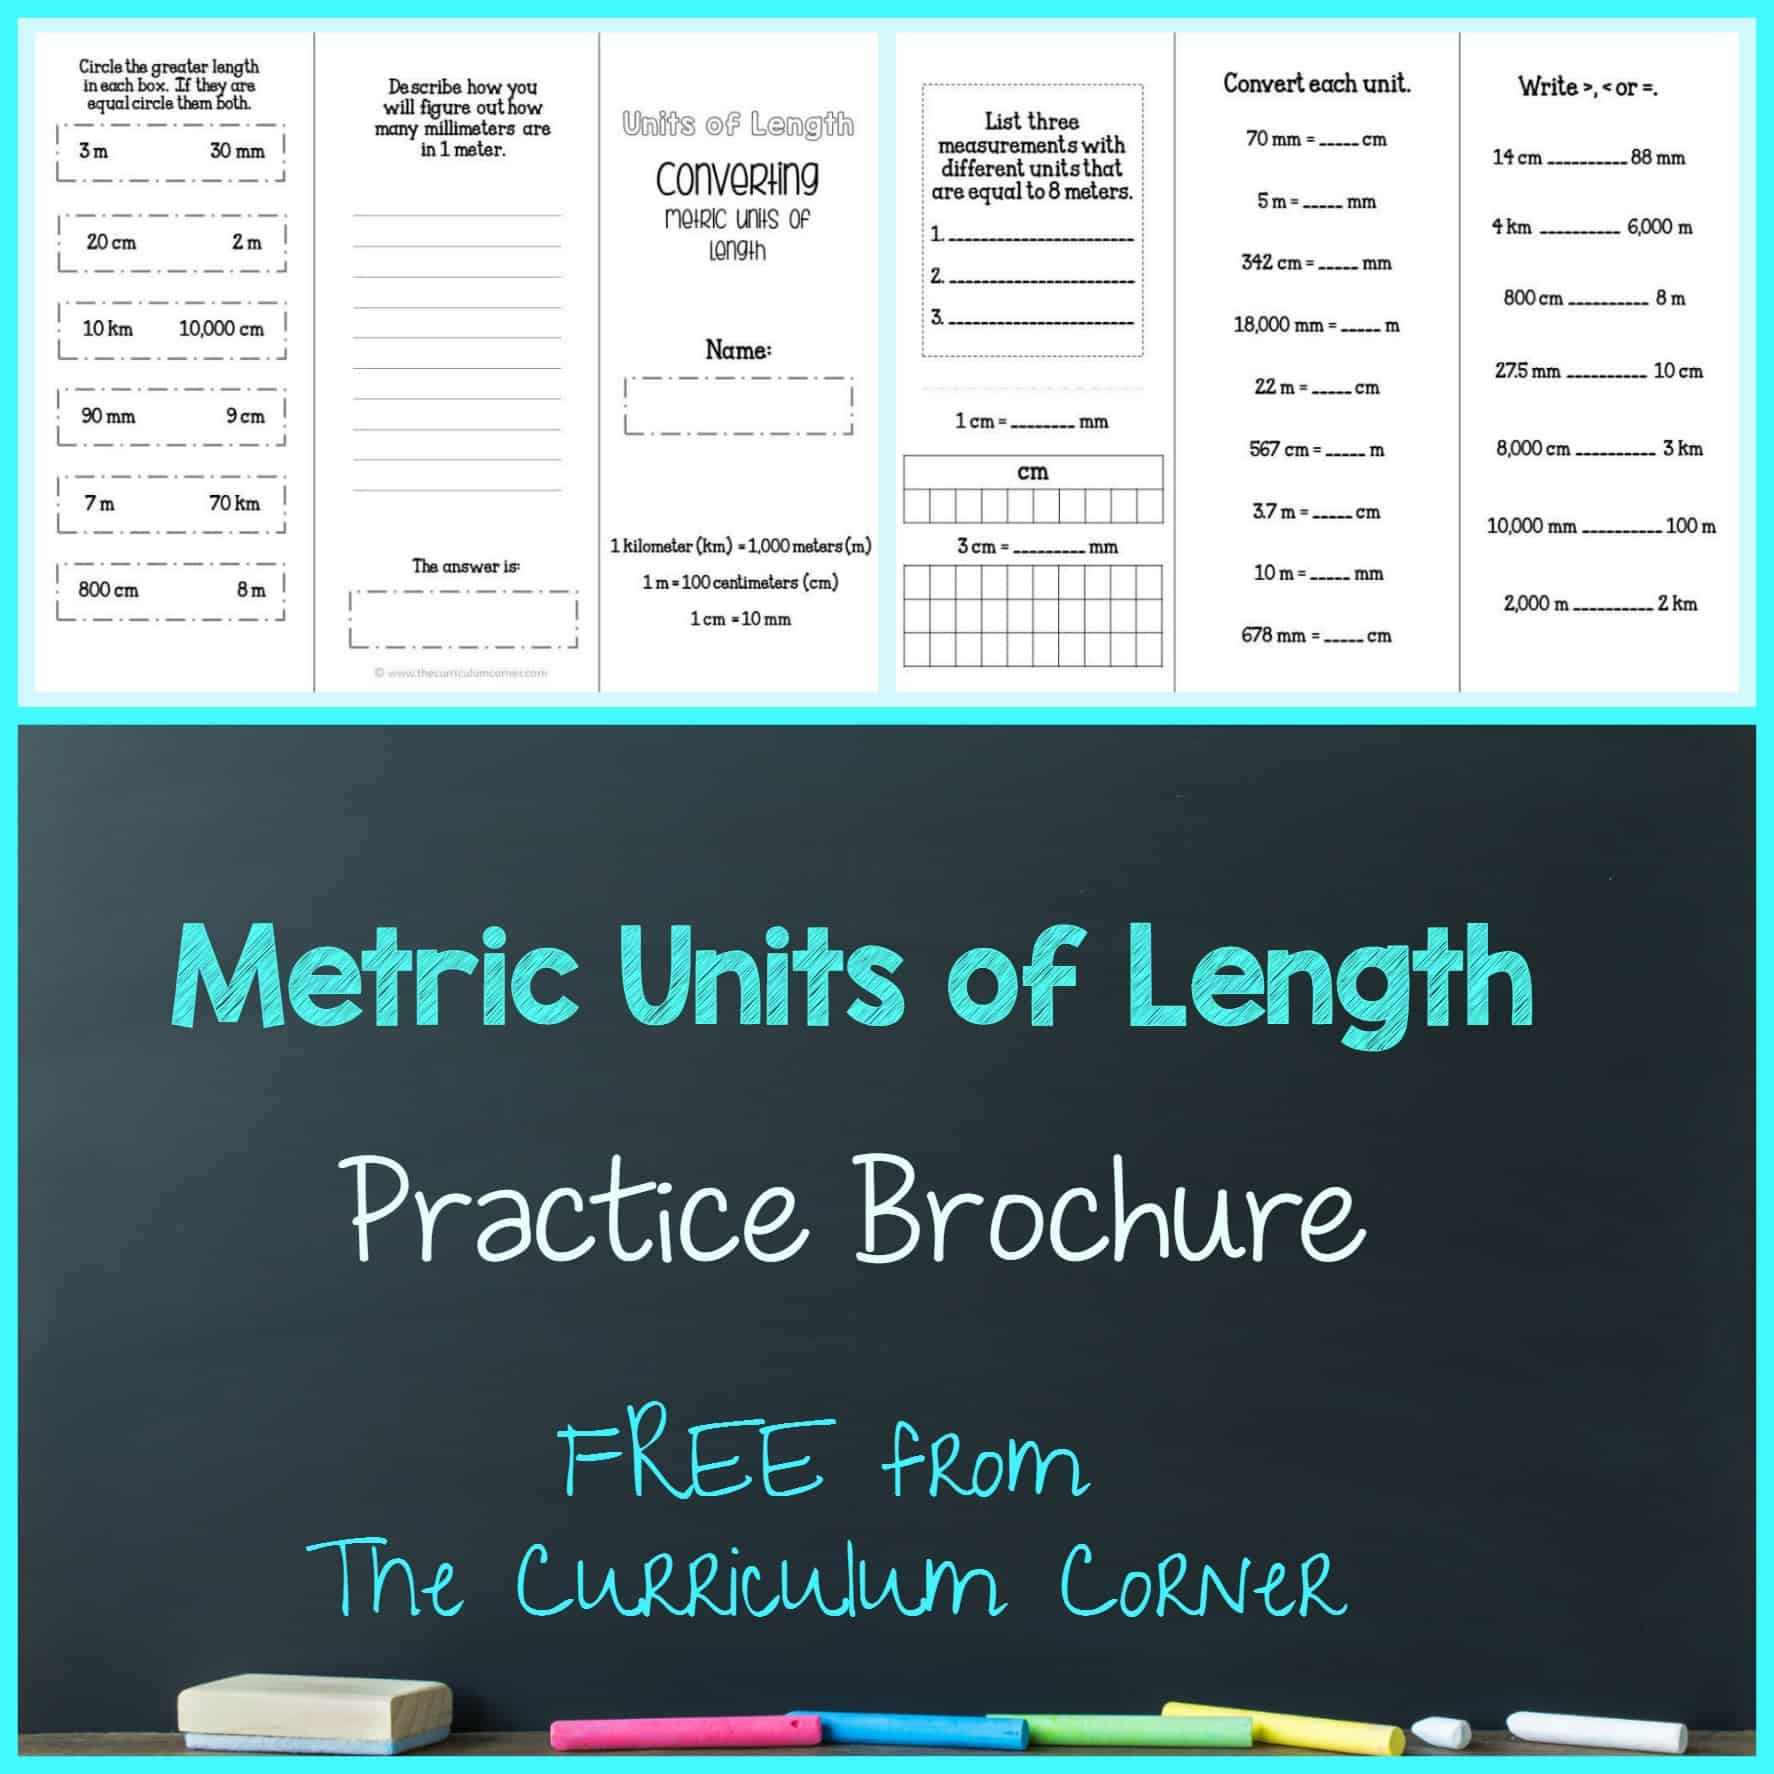 converting metric units of length brochure - the curriculum corner 4-5-6